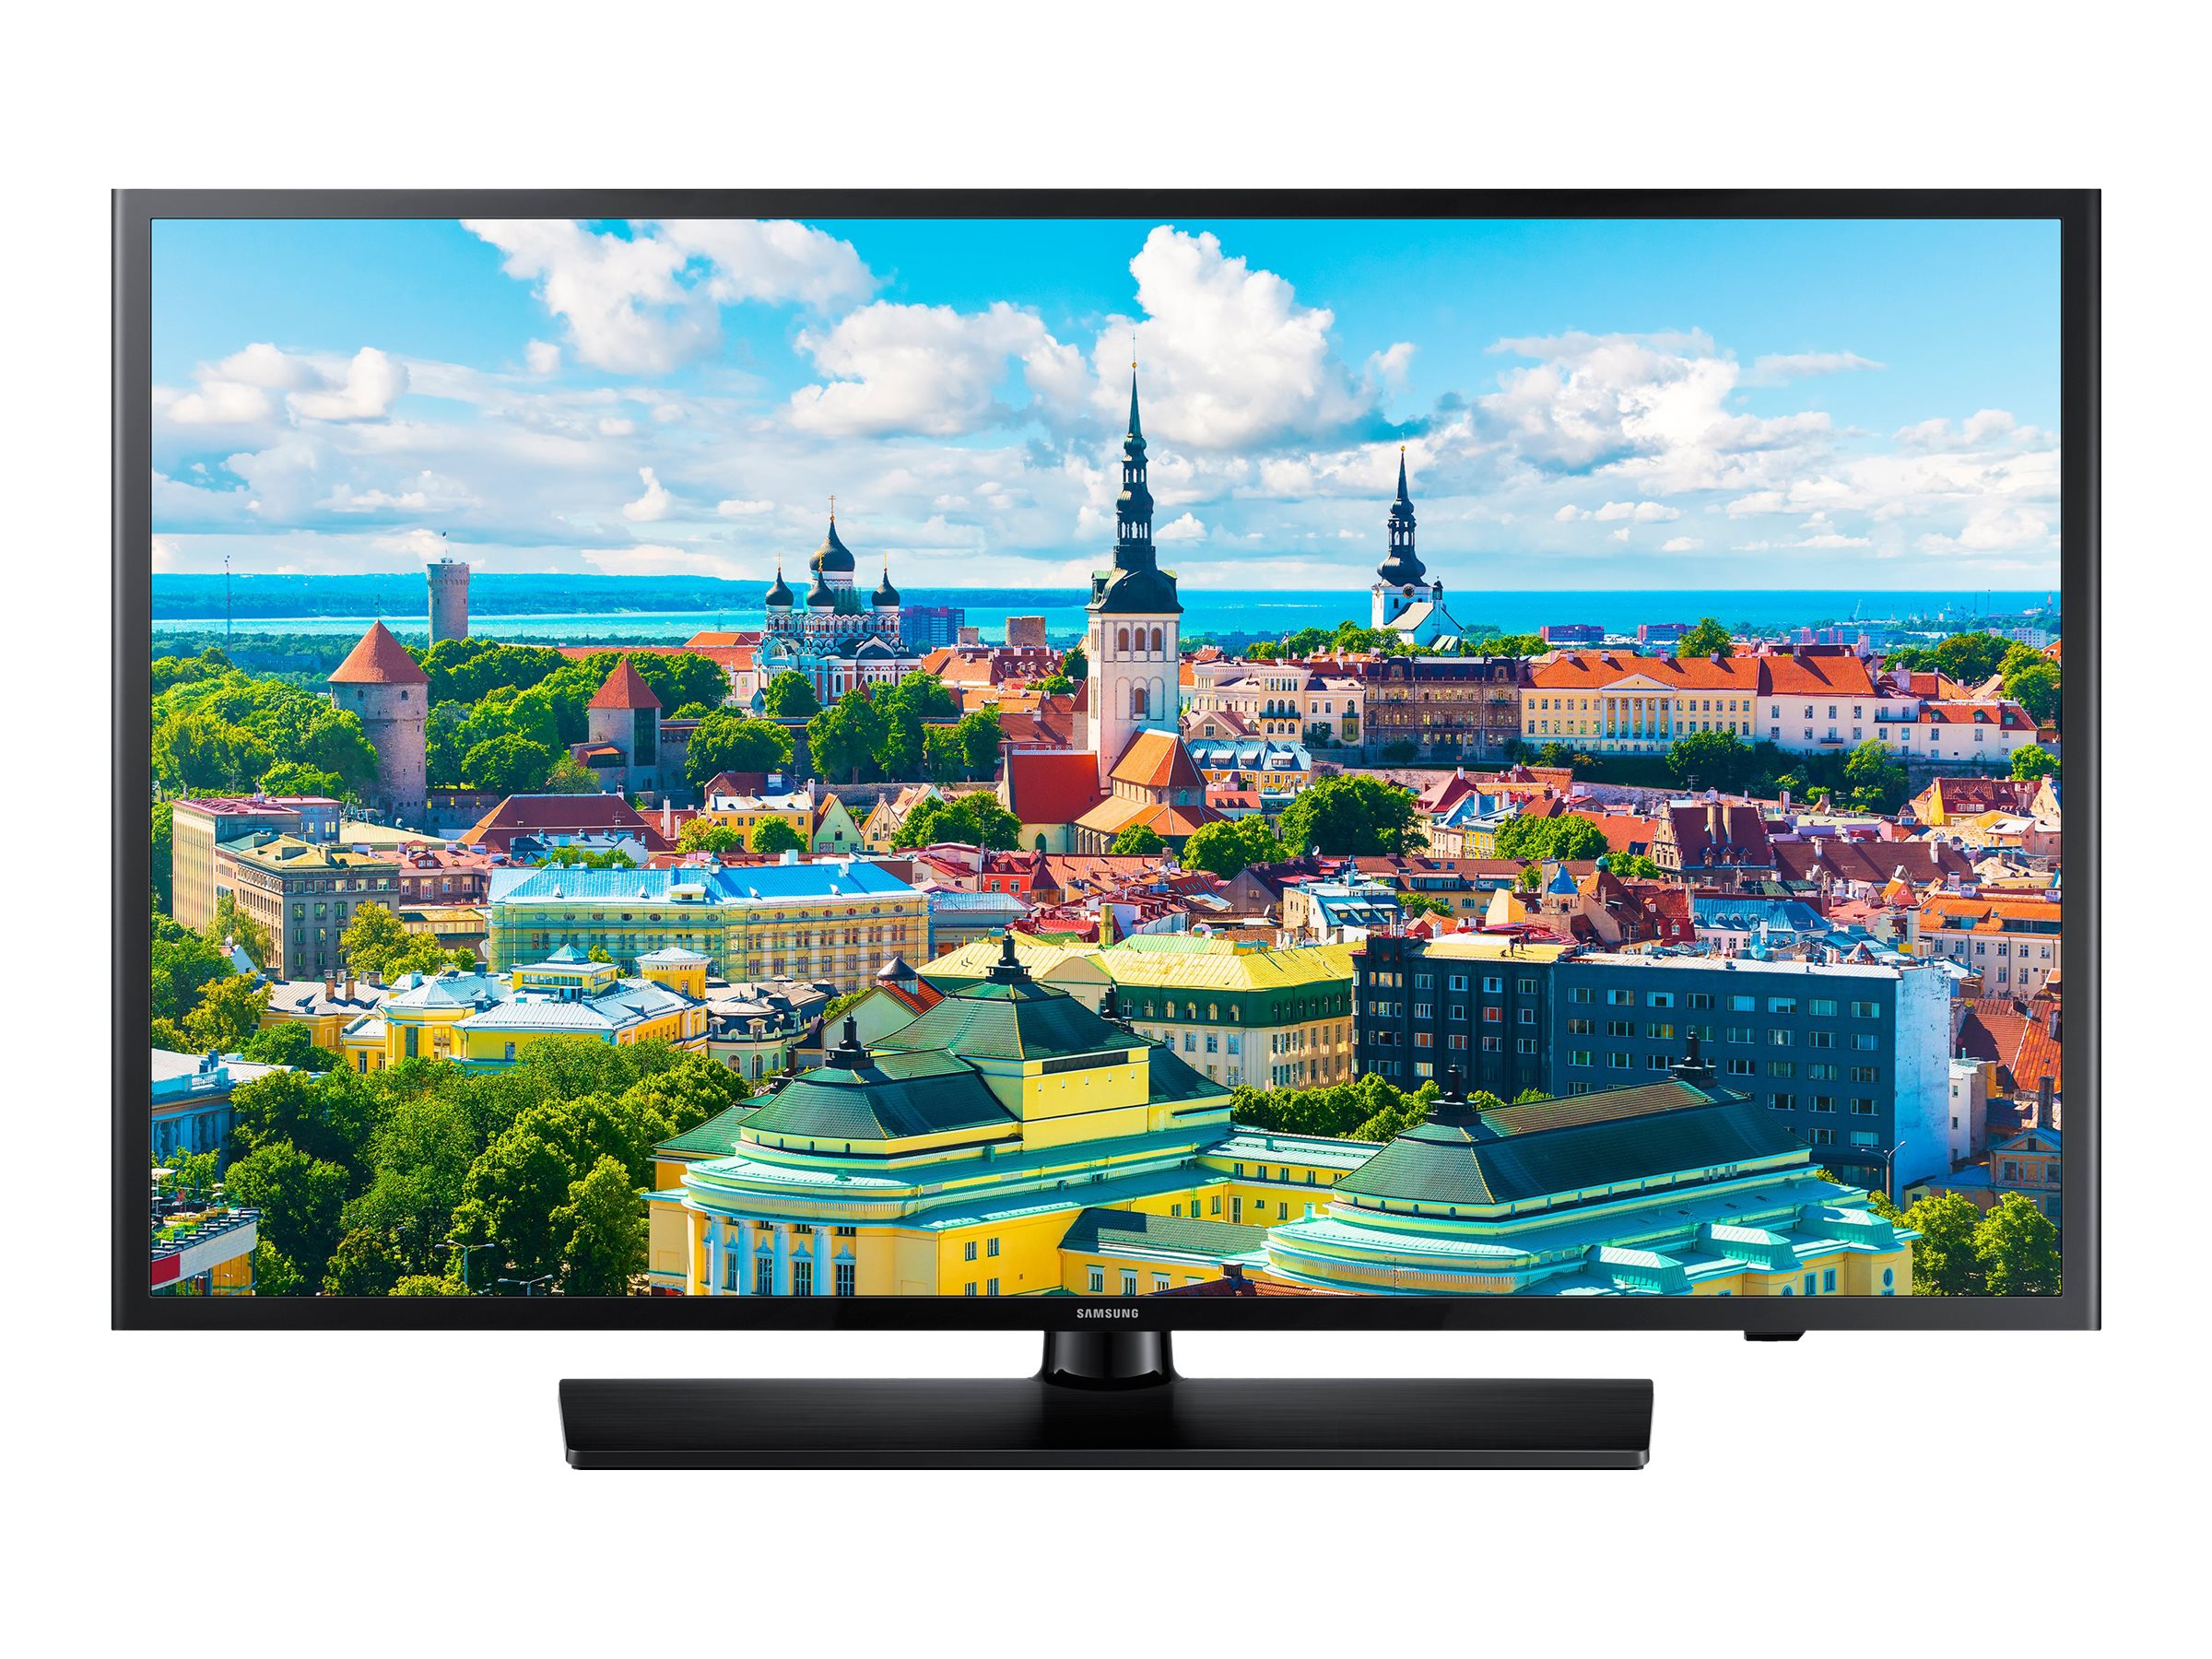 Samsung 40 477 Full HD Series LED-LCD Hospitality TV, Black, HG40ND477SFXZA, 30650194, Televisions - LED-LCD Commercial